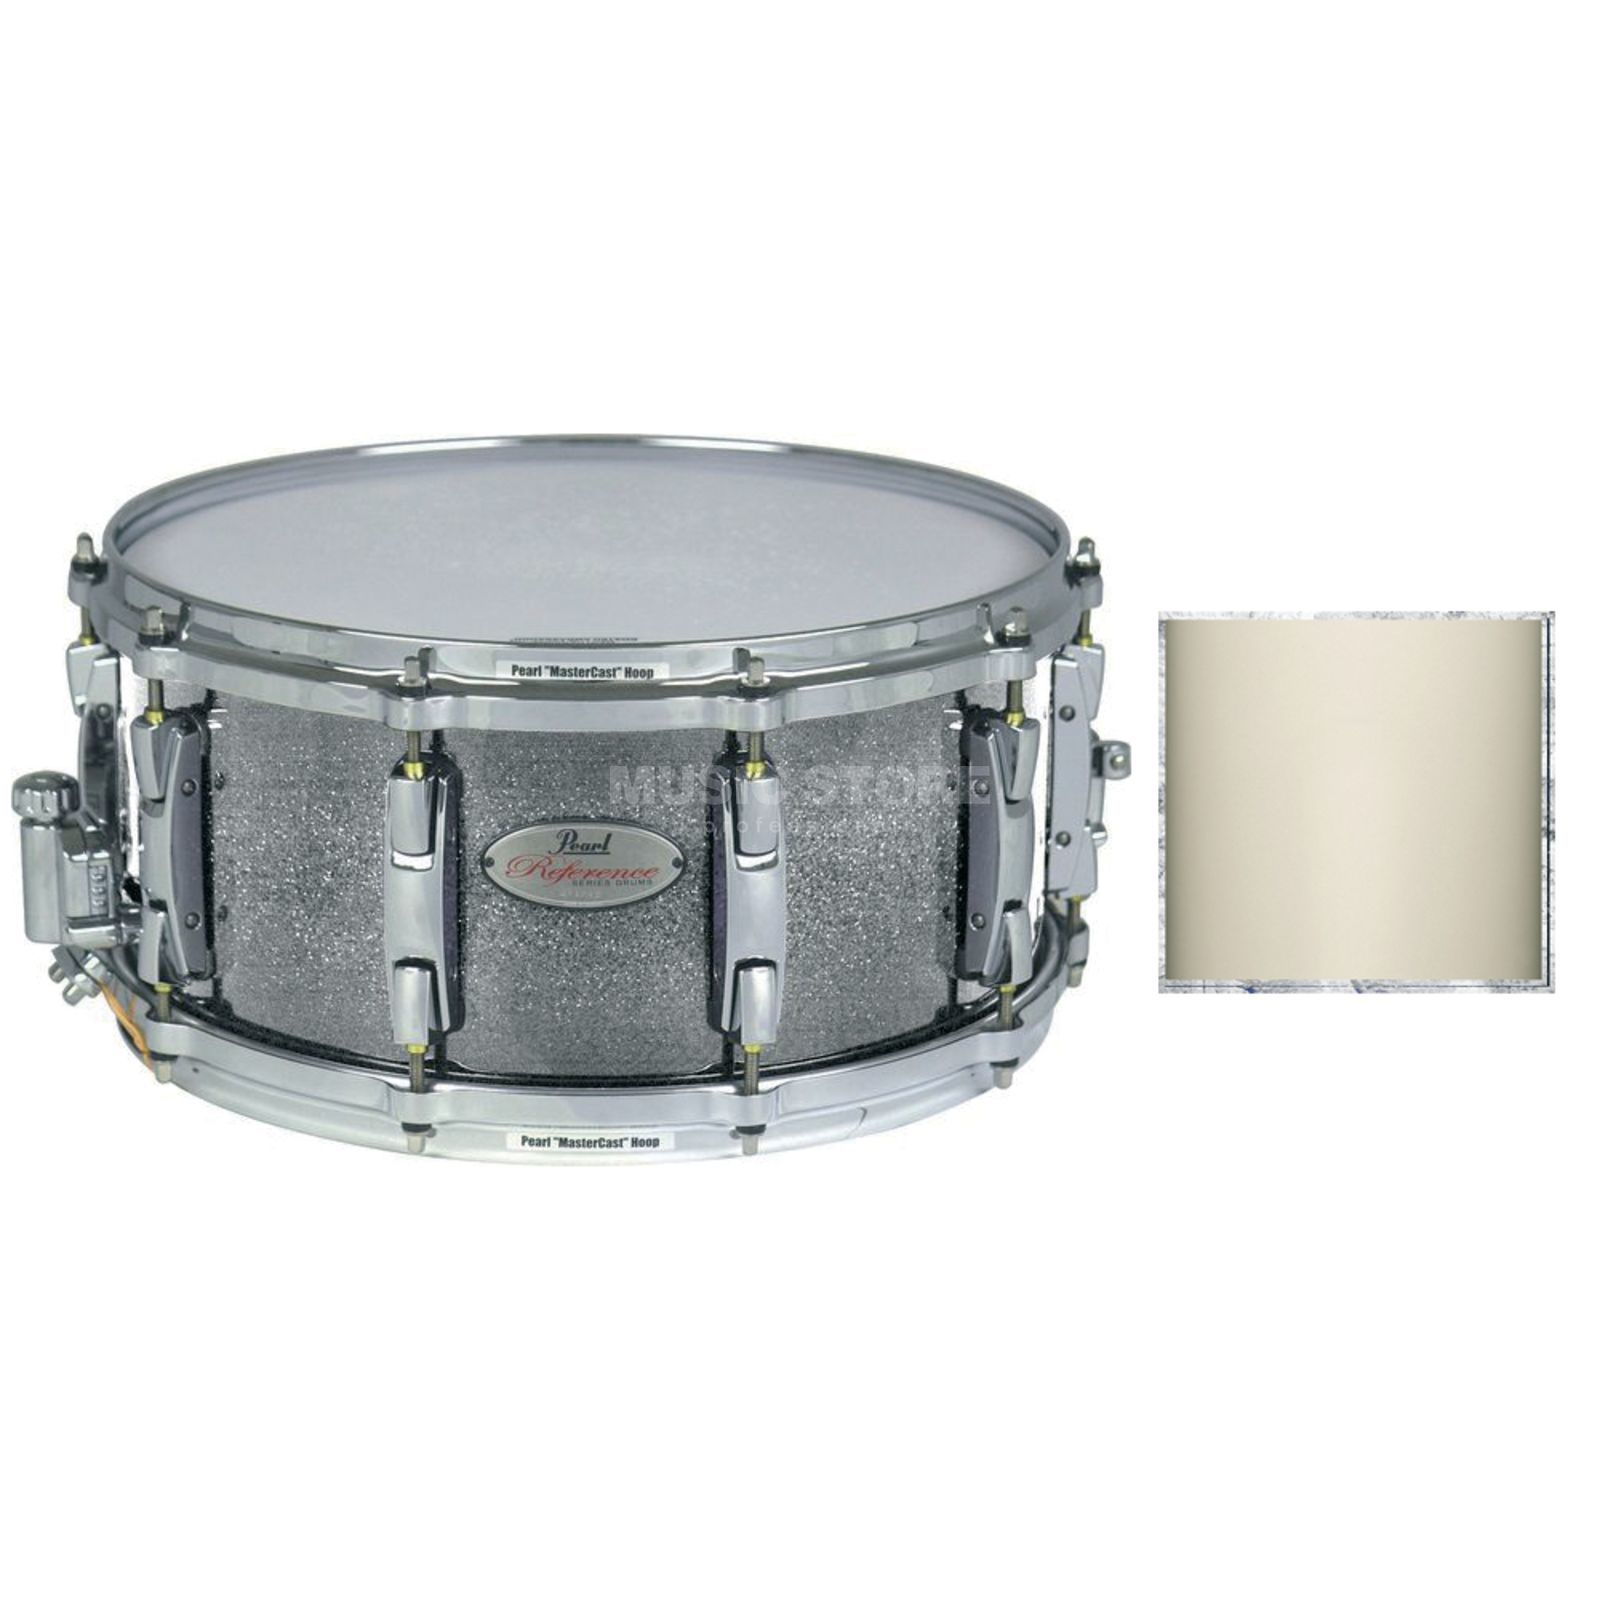 "Pearl RF1465S/C Reference Snare 14""x6,5"", Ivory Pearl #330 Produktbild"